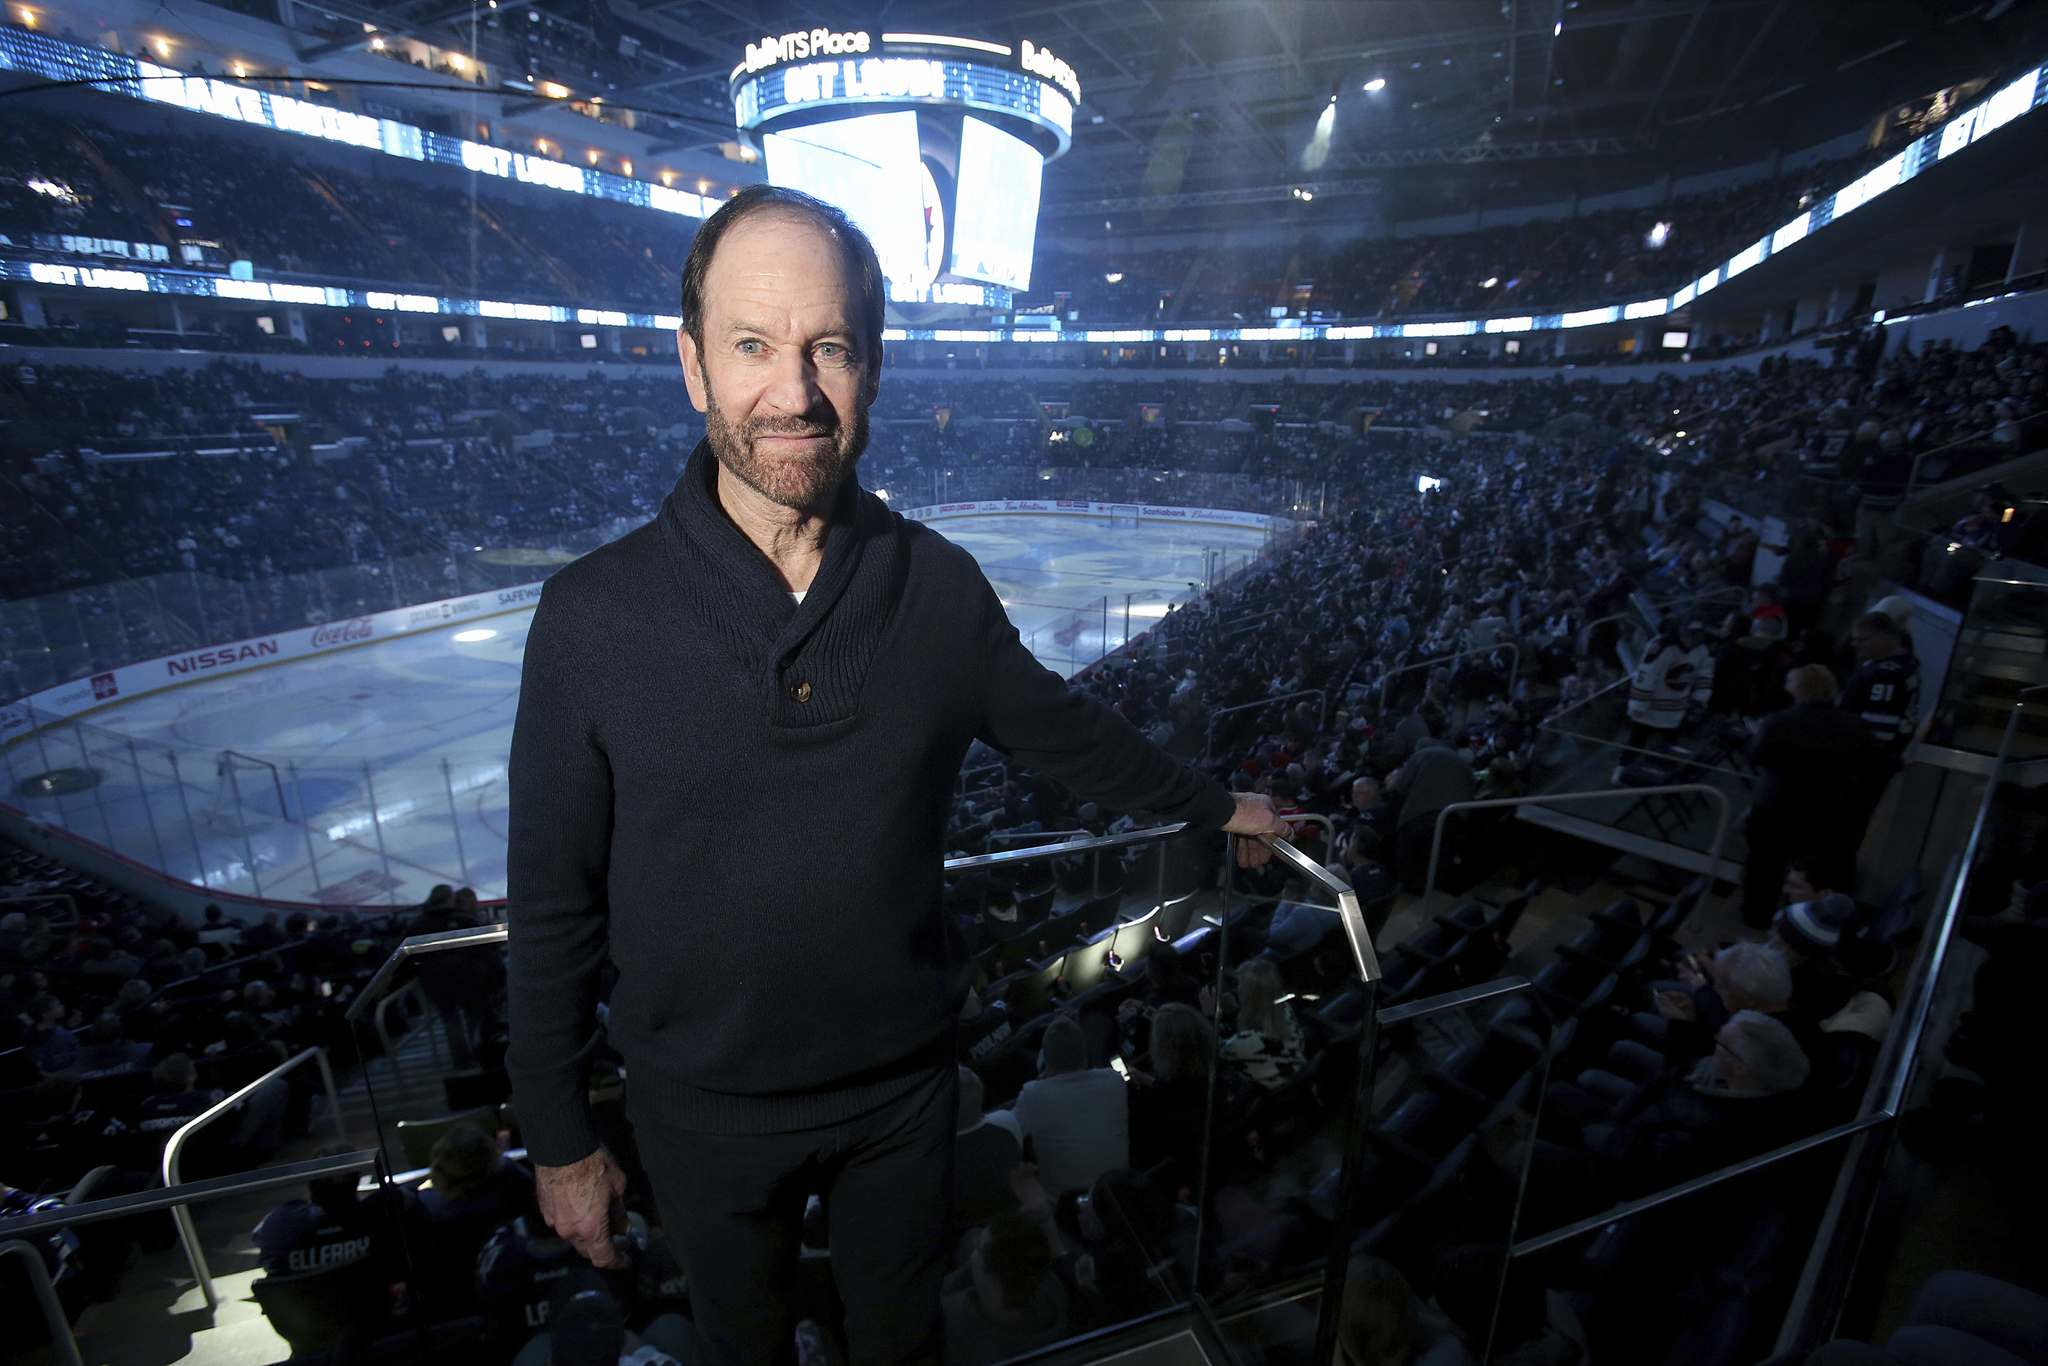 Tom Morrissey was at Bell MTS Place in December 2019 to watch his son Josh play against the Chicago Blackhawks.